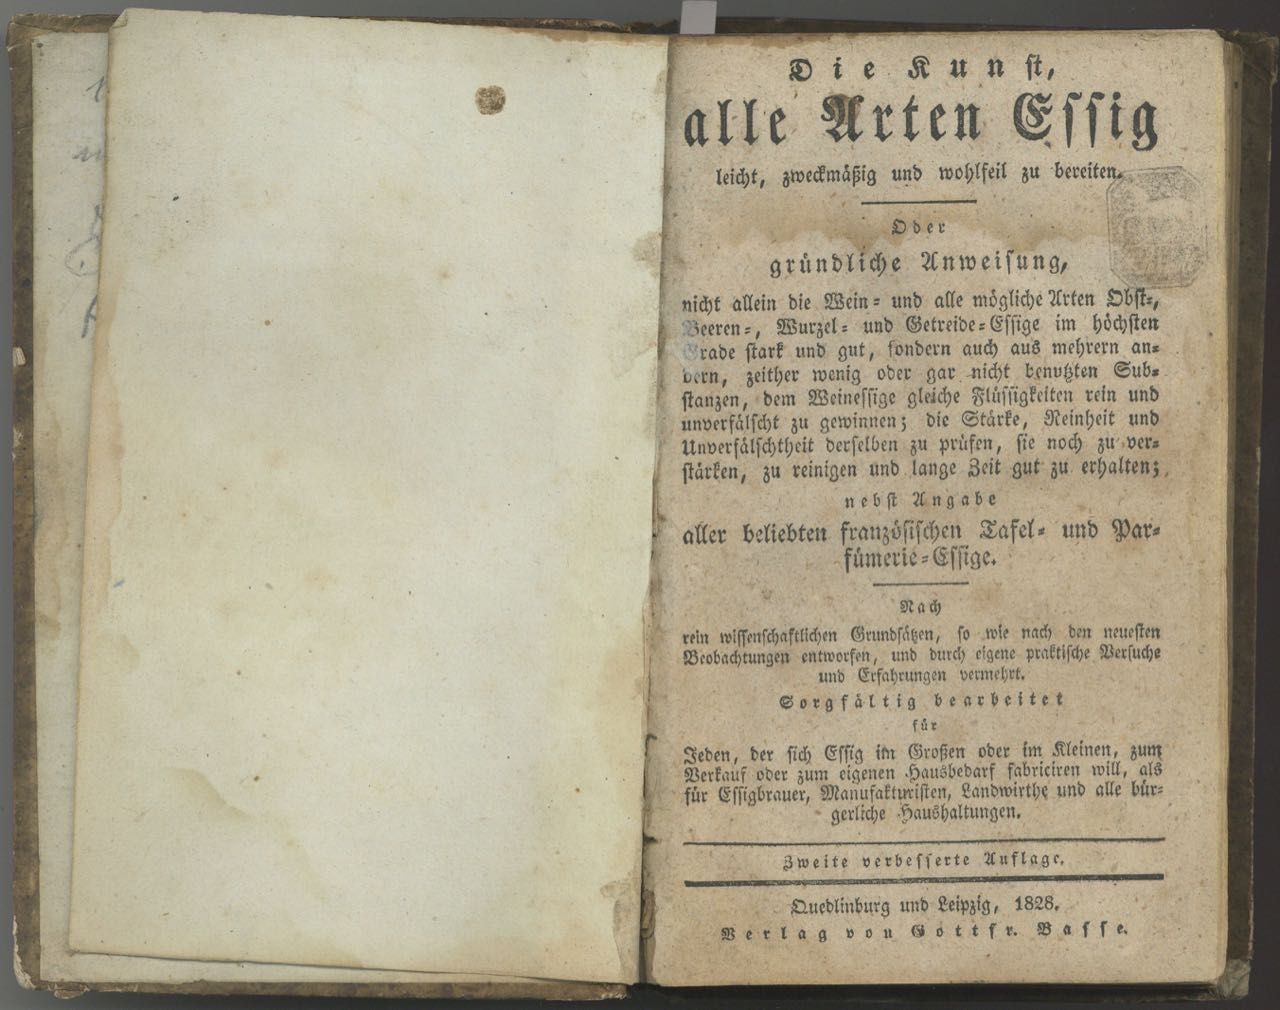 Die Kunst alle Arten Essig ... zu bereiten ... nebst Angabe aller beliebten französischen Tafel und Parfümerie-Essige.... [bound with] Der praktische Hefenfabrikant. Fermentation/Distillation, Anonymous / F. W. Gutsmuths.